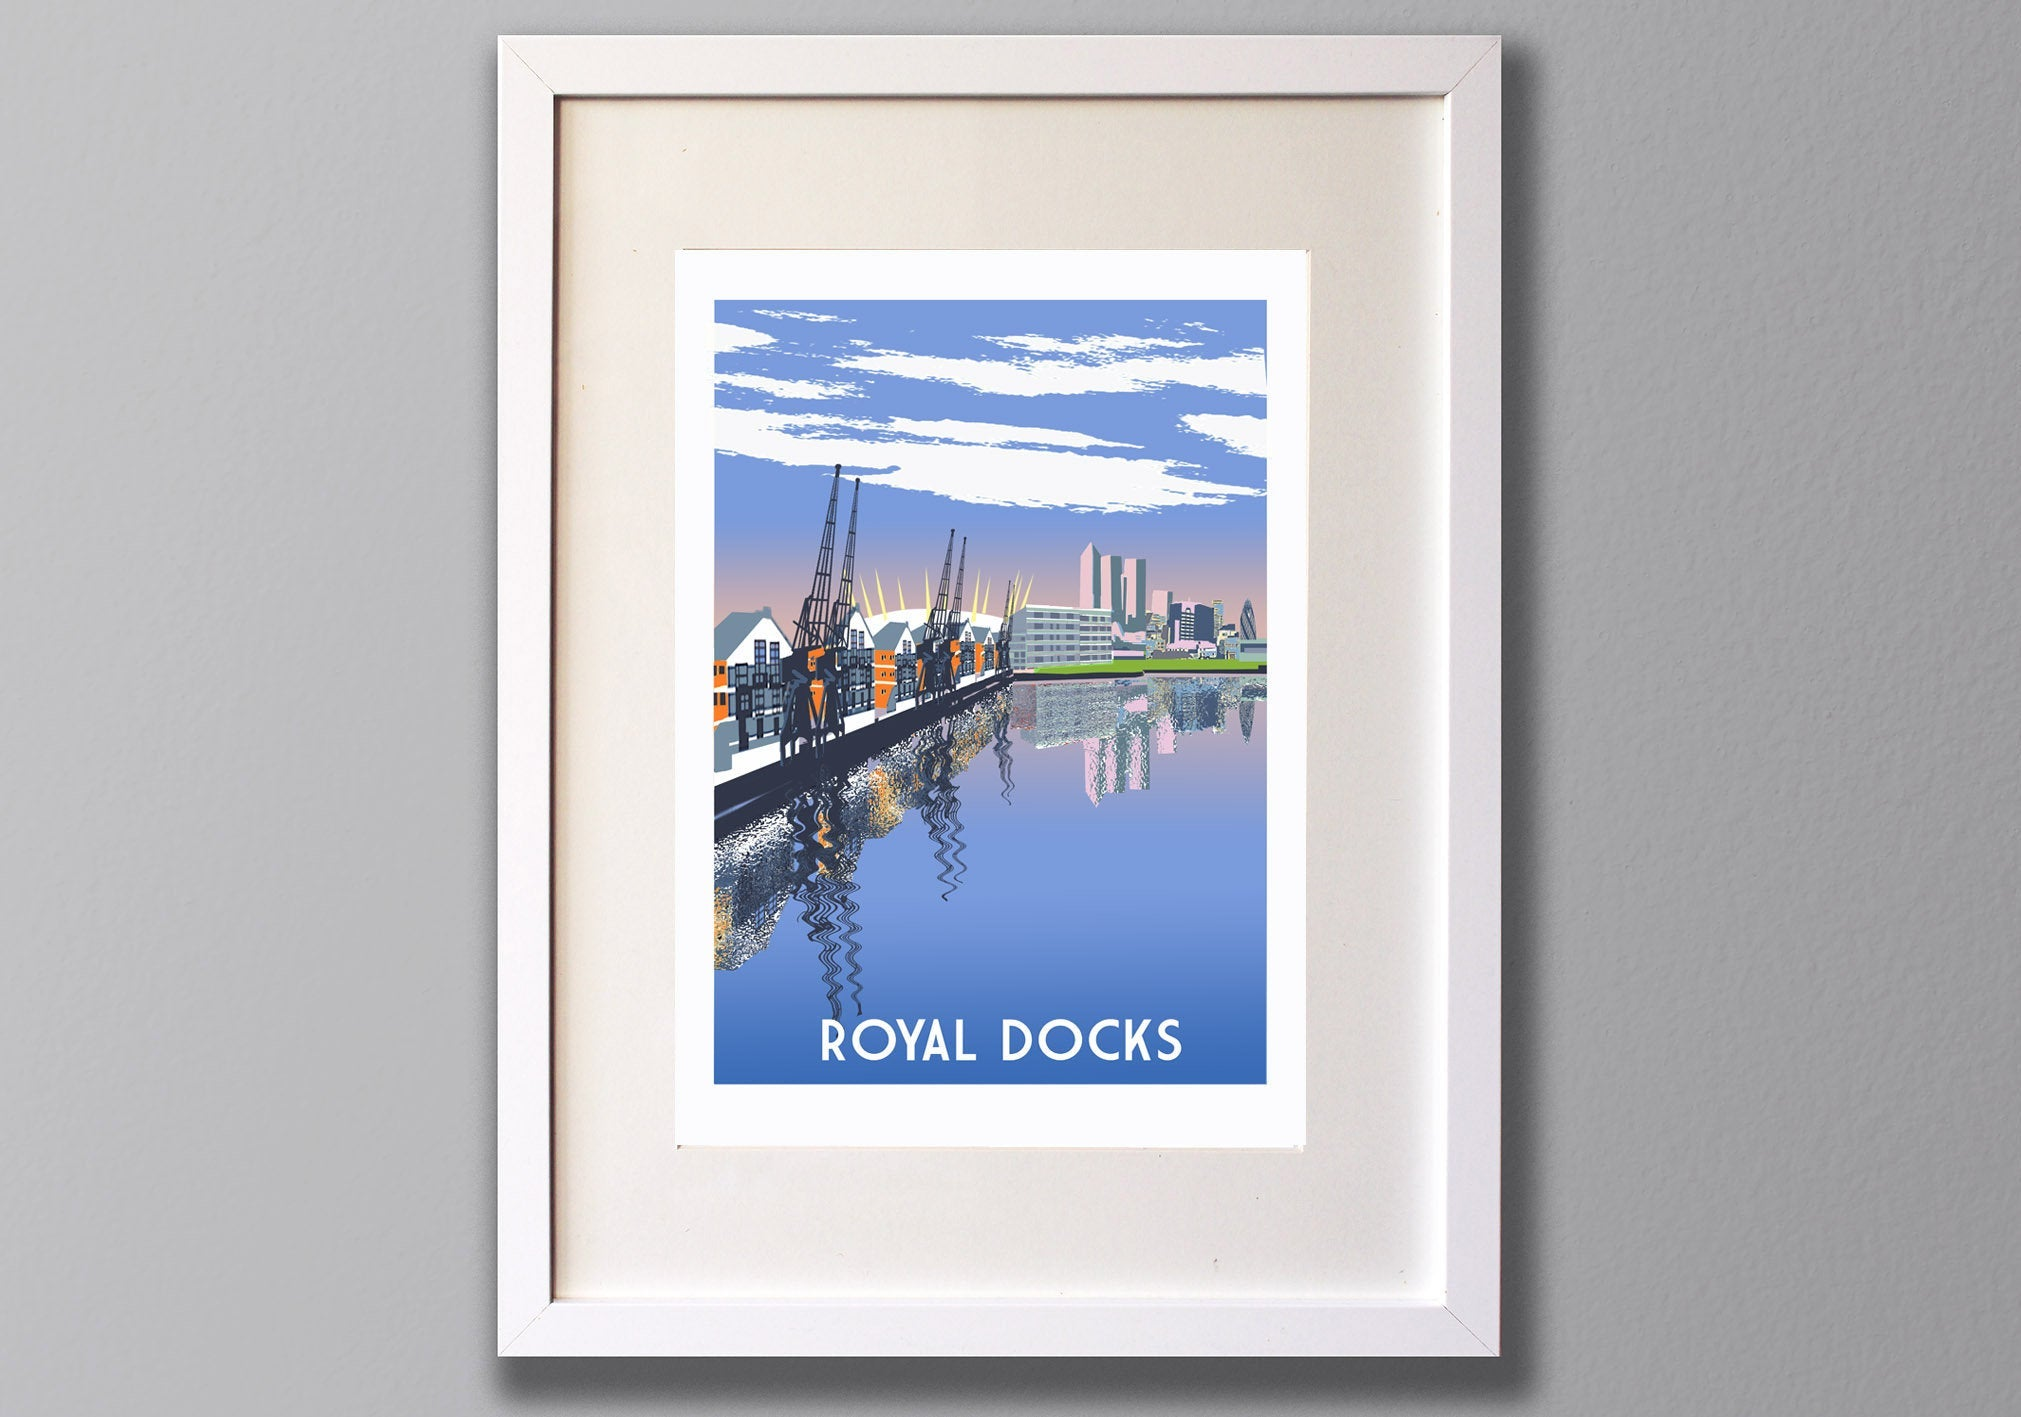 Royal Docks Print, Limited Edition London Giclee Art A3 - Red Faces Prints